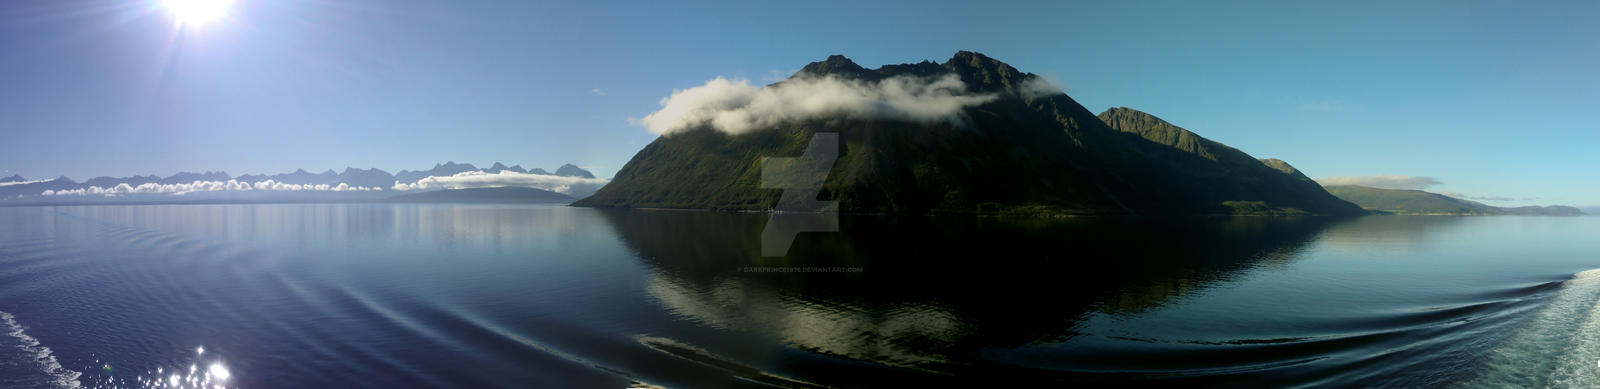 Misty mountains of norway by darkprince1976